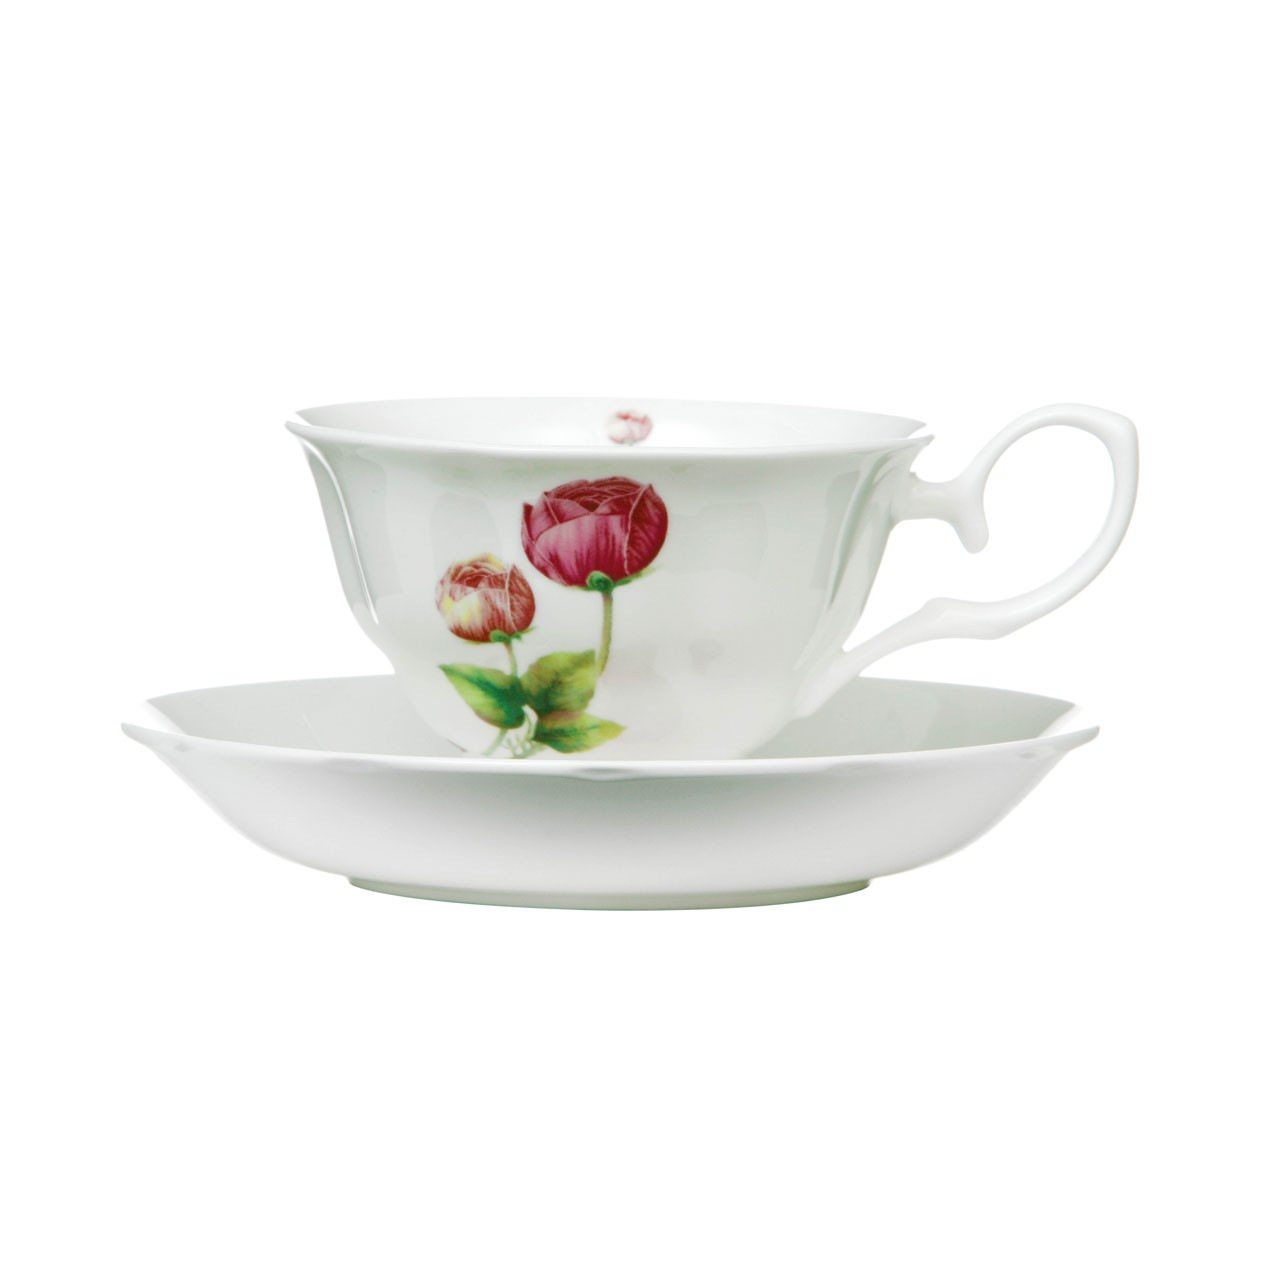 160ml Cup and Saucer , Set of 2, Peony